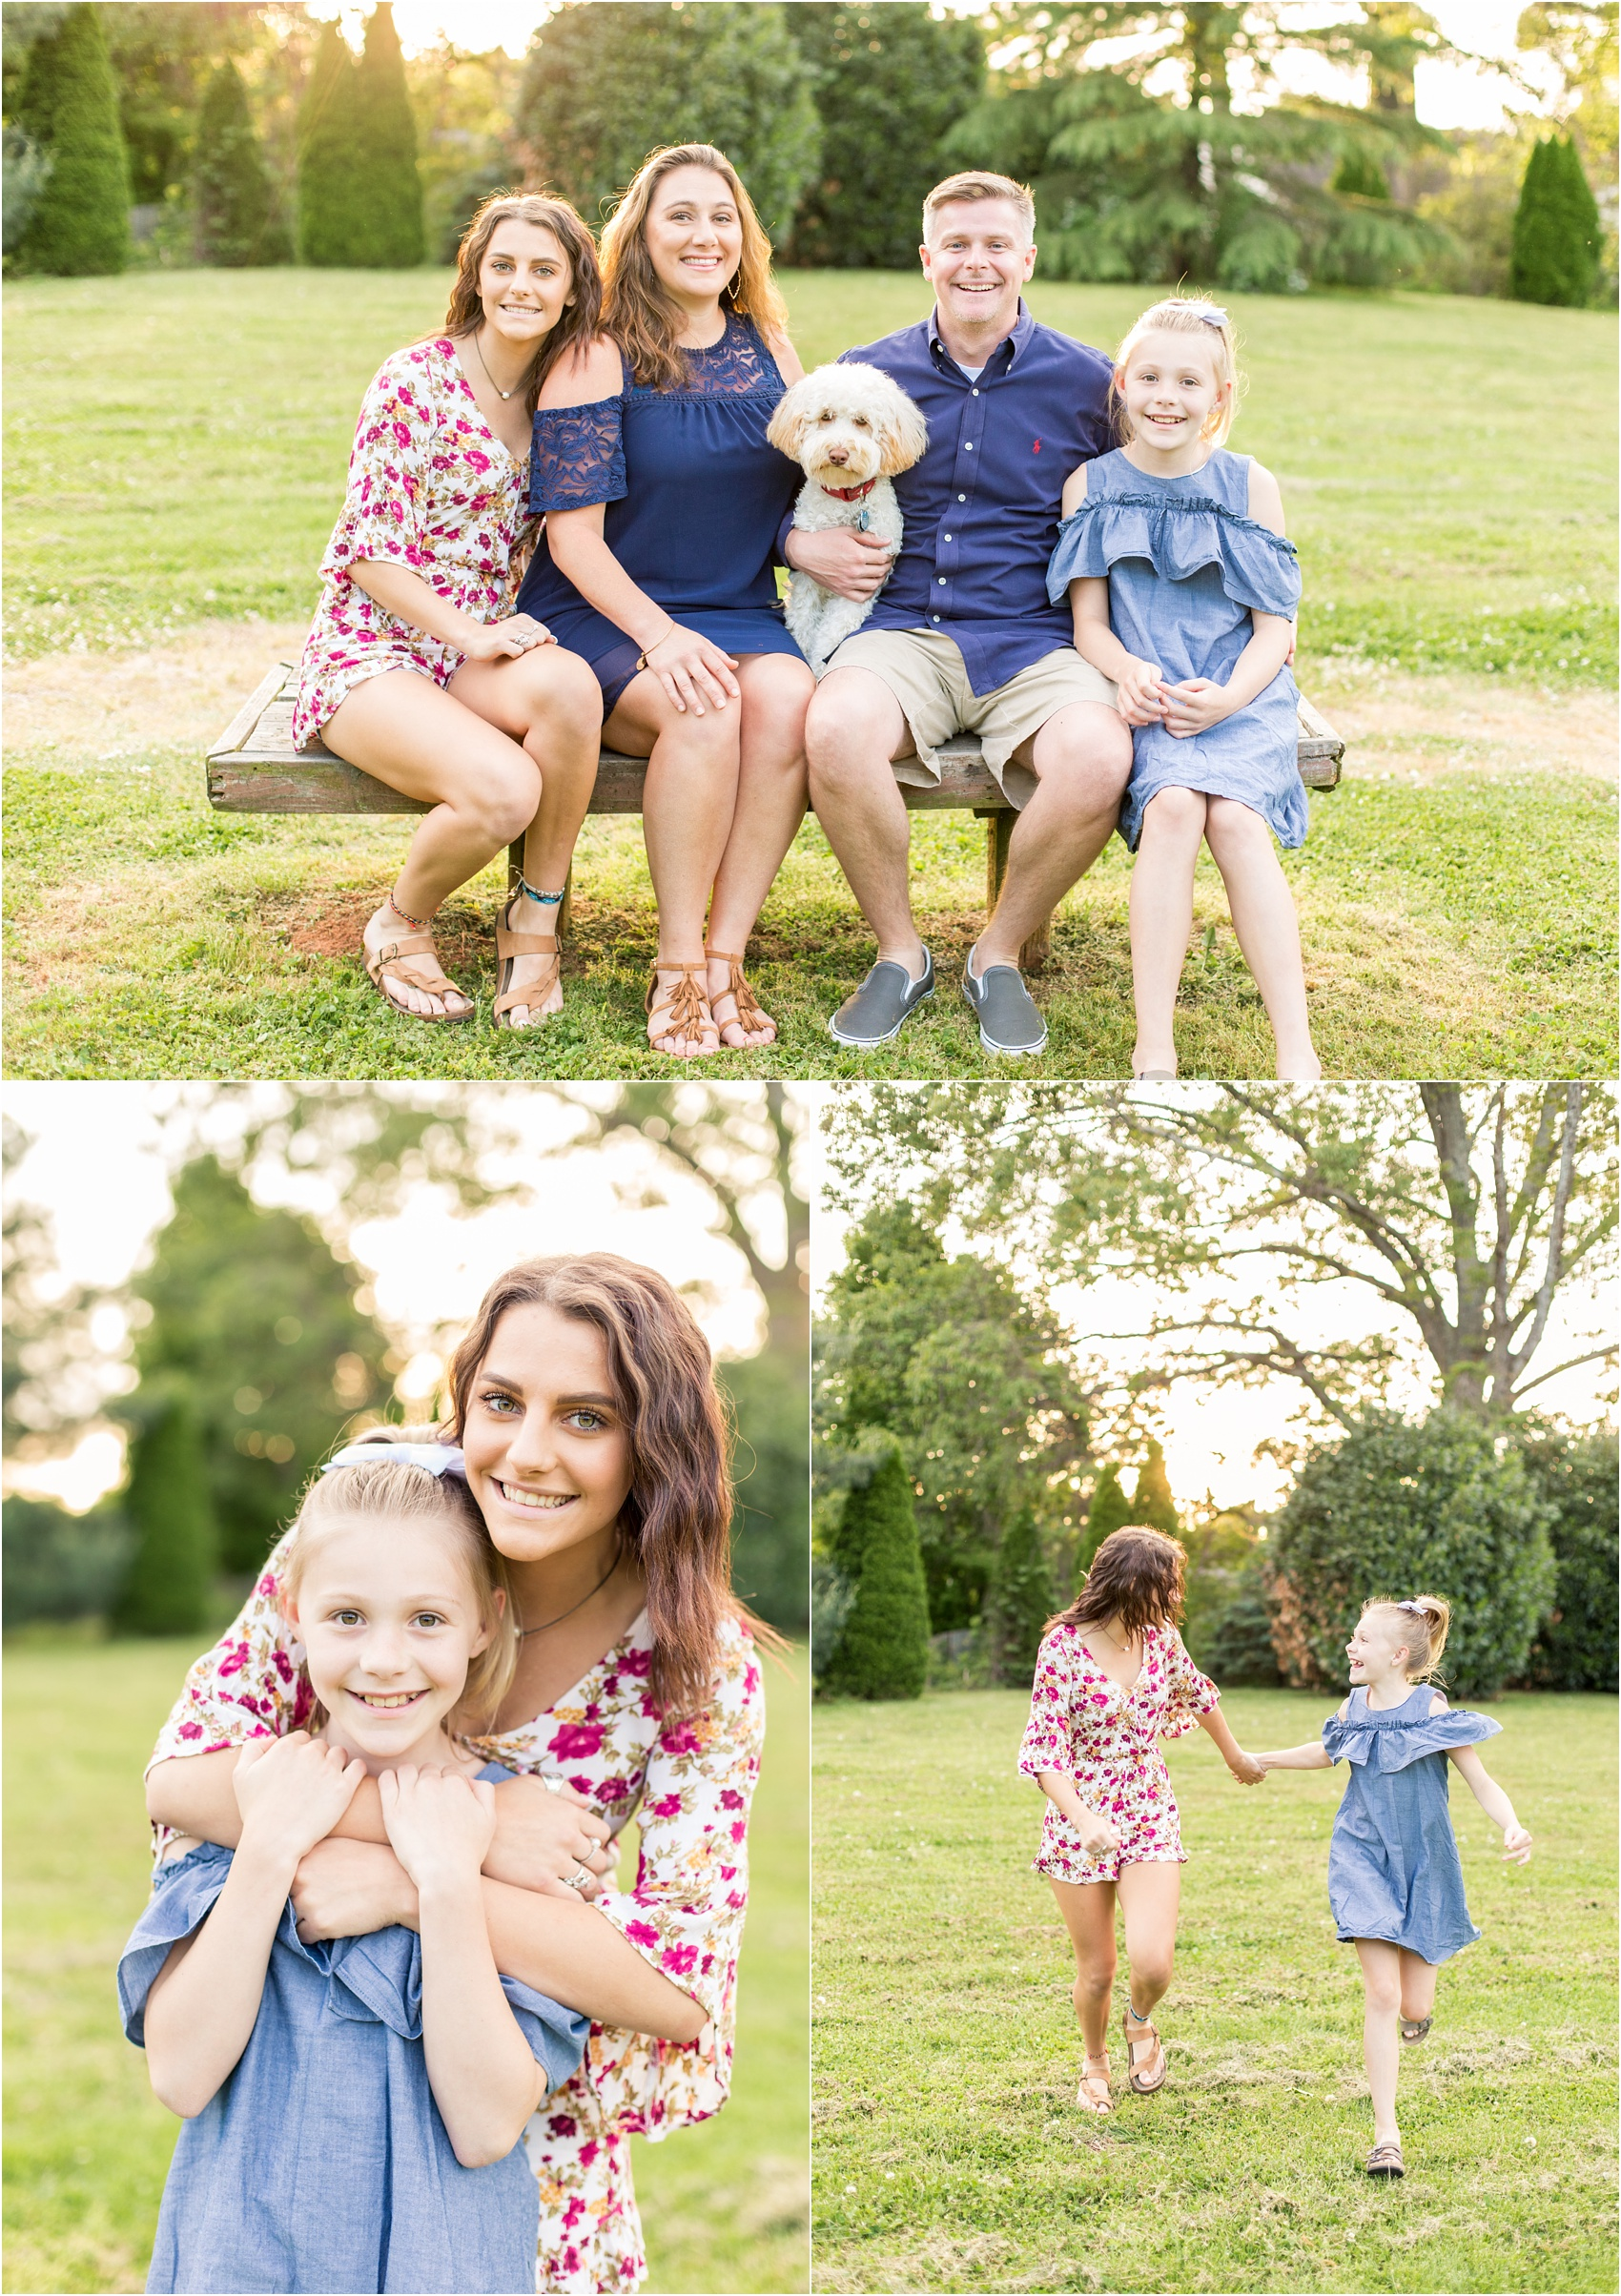 Savannah Eve Photography- Baysden Family-2.jpg